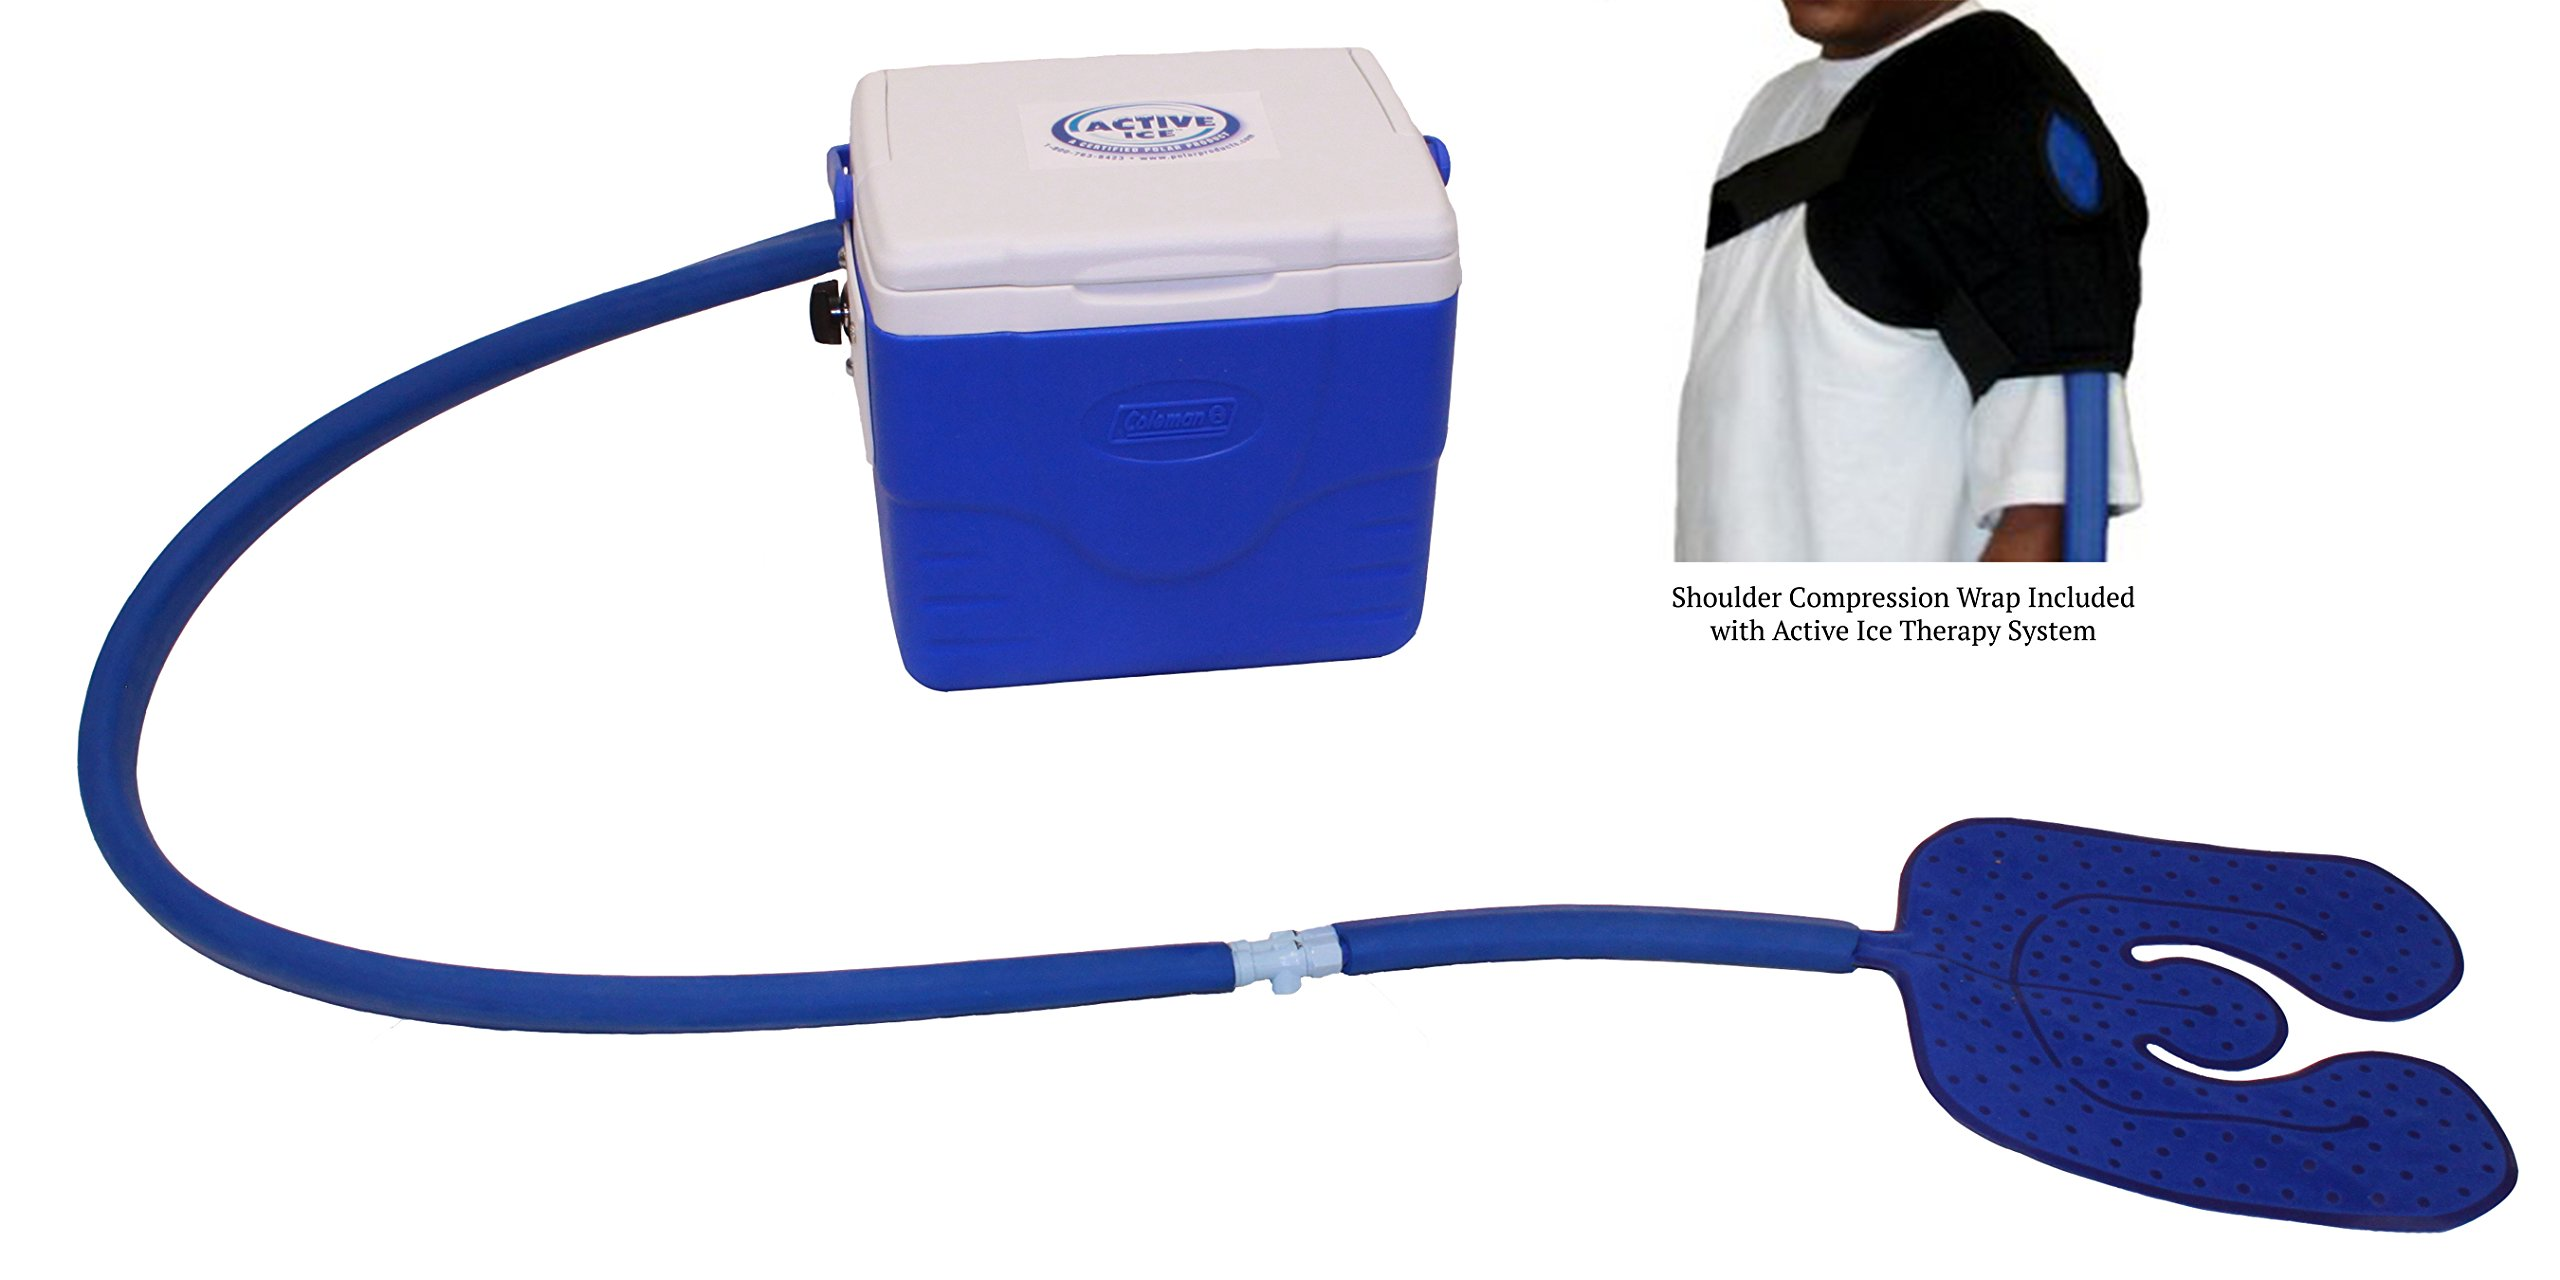 Active Ice Therapy System 2.0 with Shoulder Compression Wrap by Polar Products Inc.